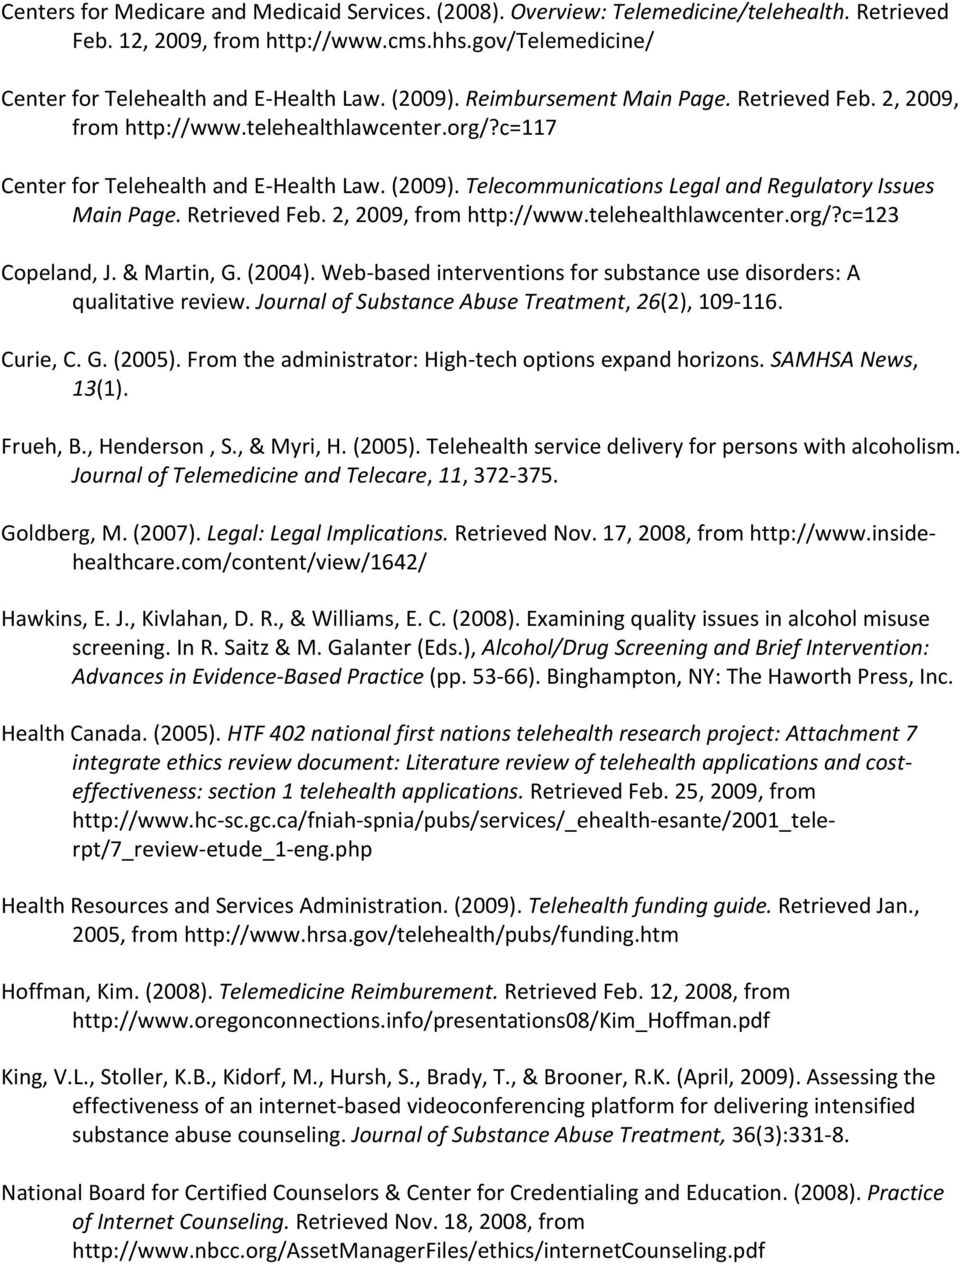 Telecommunications Legal and Regulatory Issues Main Page. Retrieved Feb. 2, 2009, from http://www.telehealthlawcenter.org/?c=123 Copeland, J. & Martin, G. (2004).